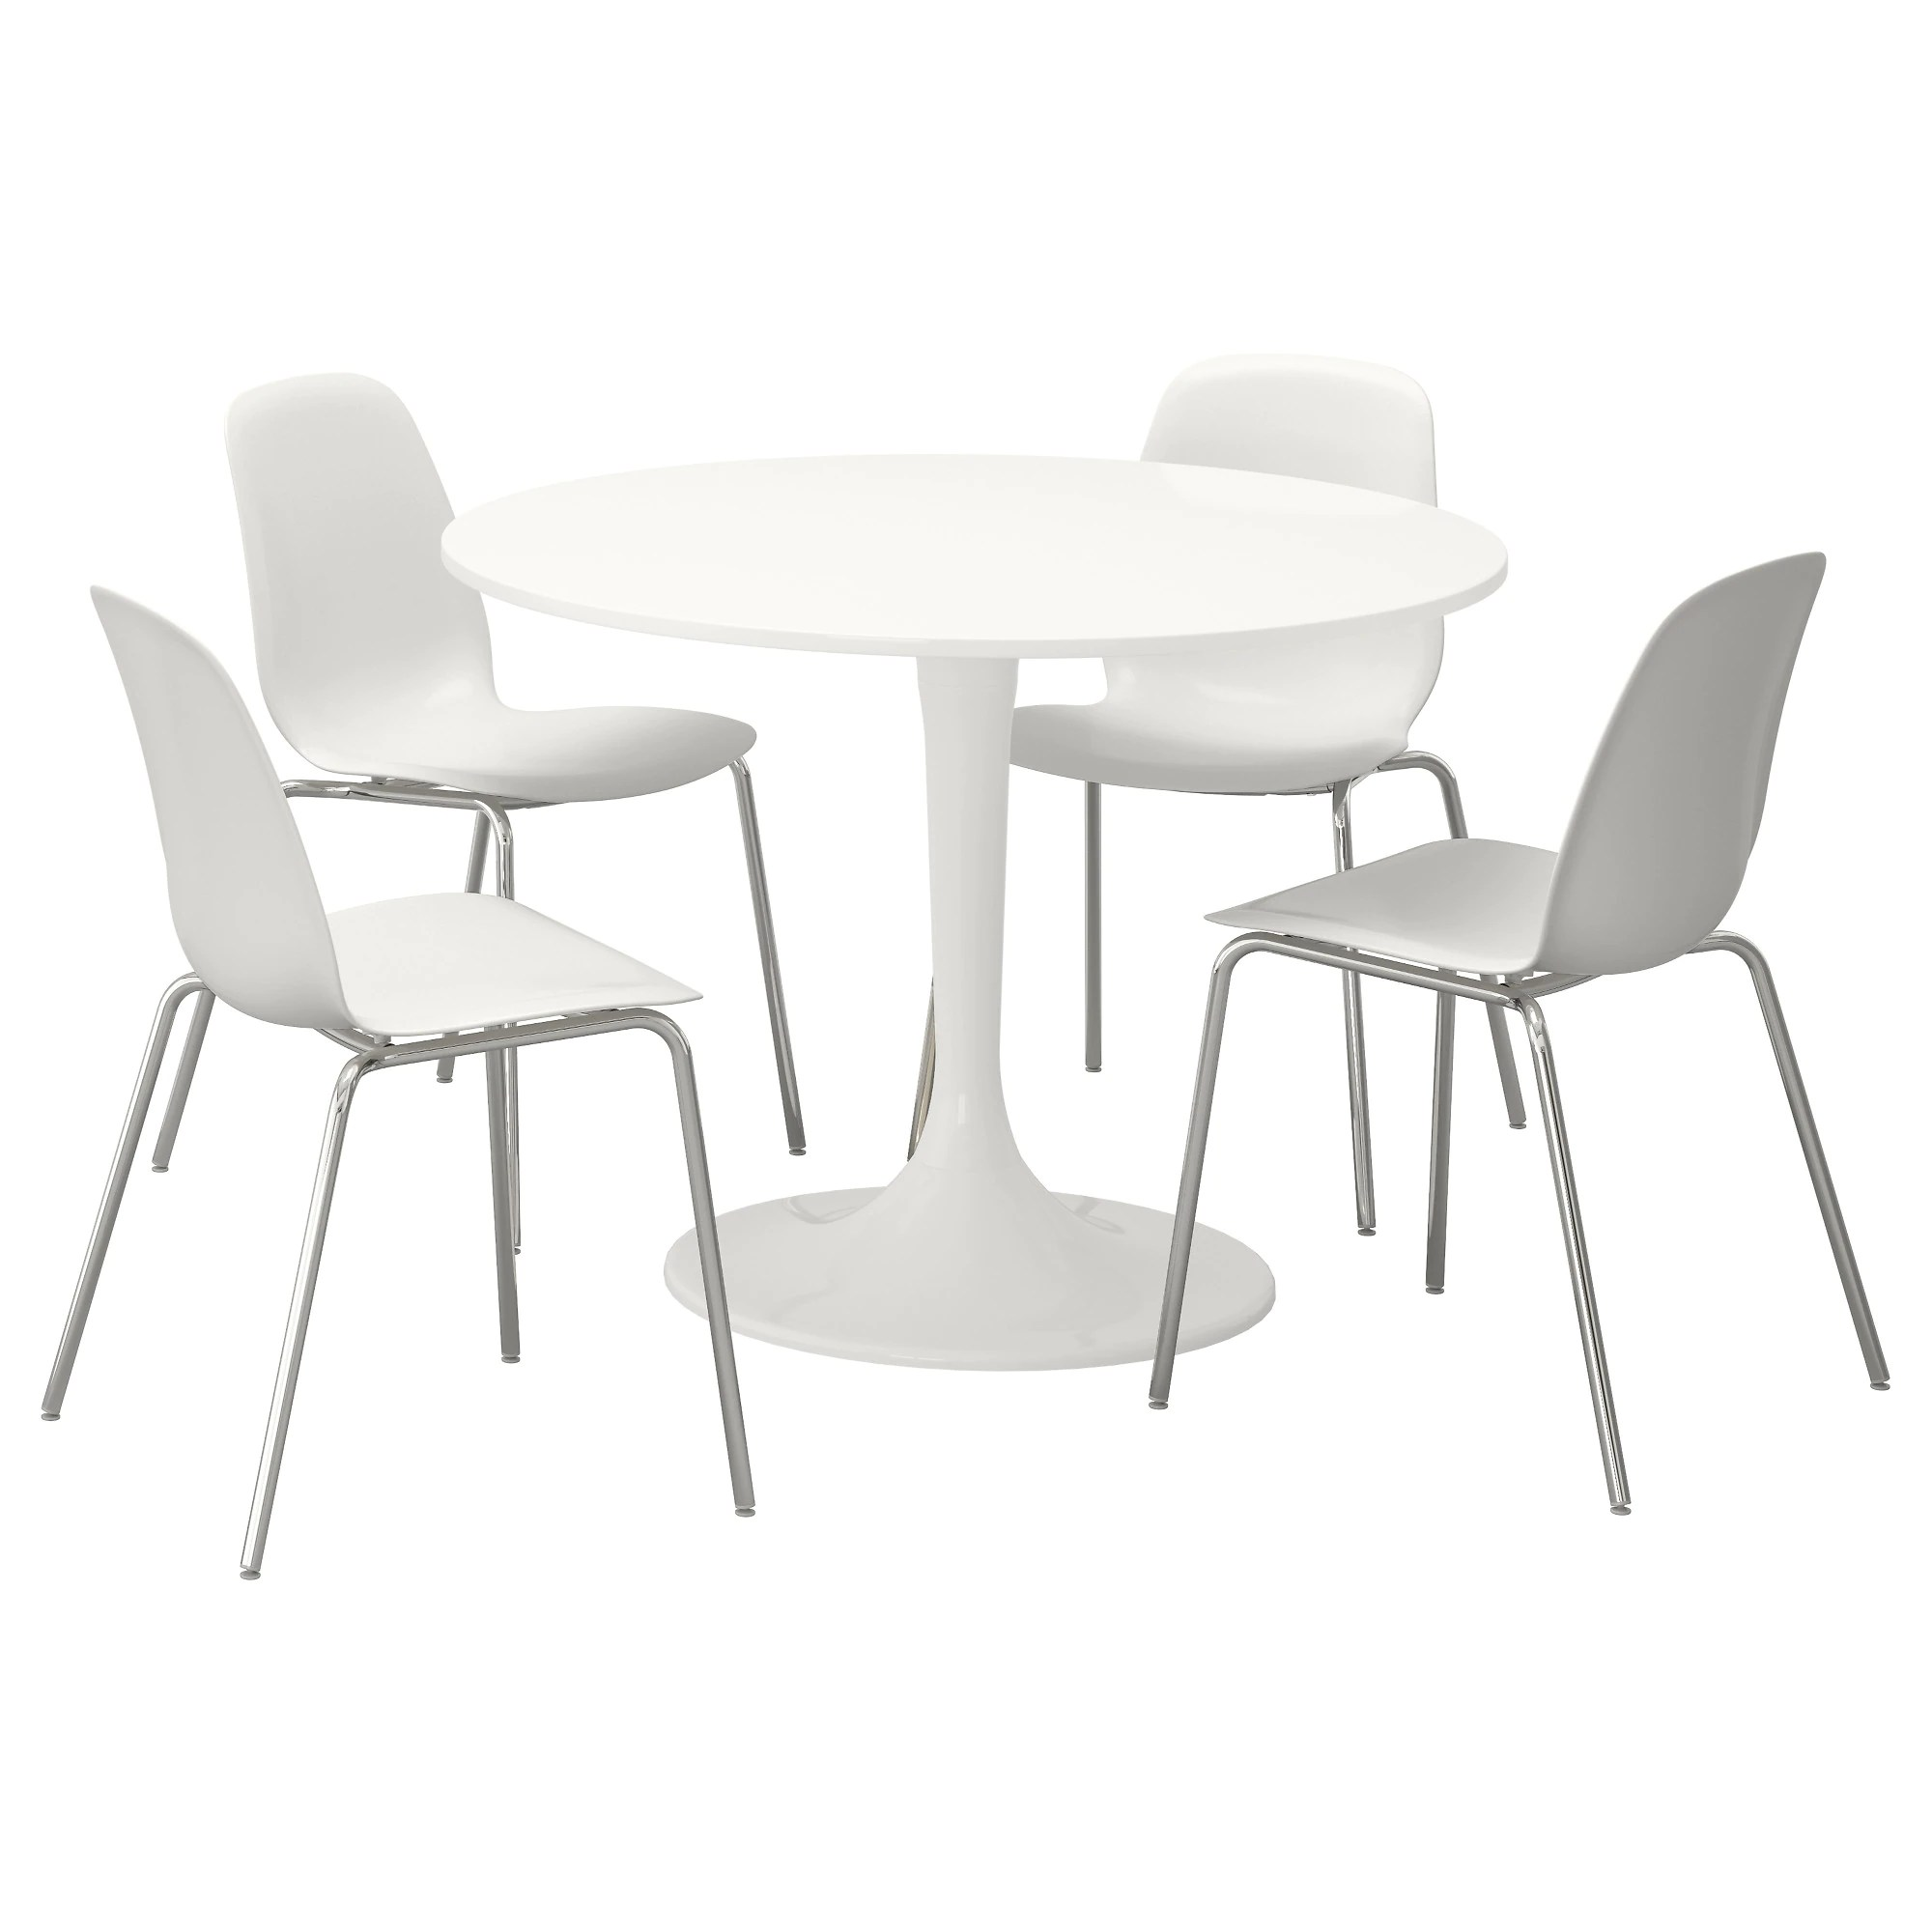 white table chairs leather dining with nailheads docksta leifarne and 4 ikea feedback